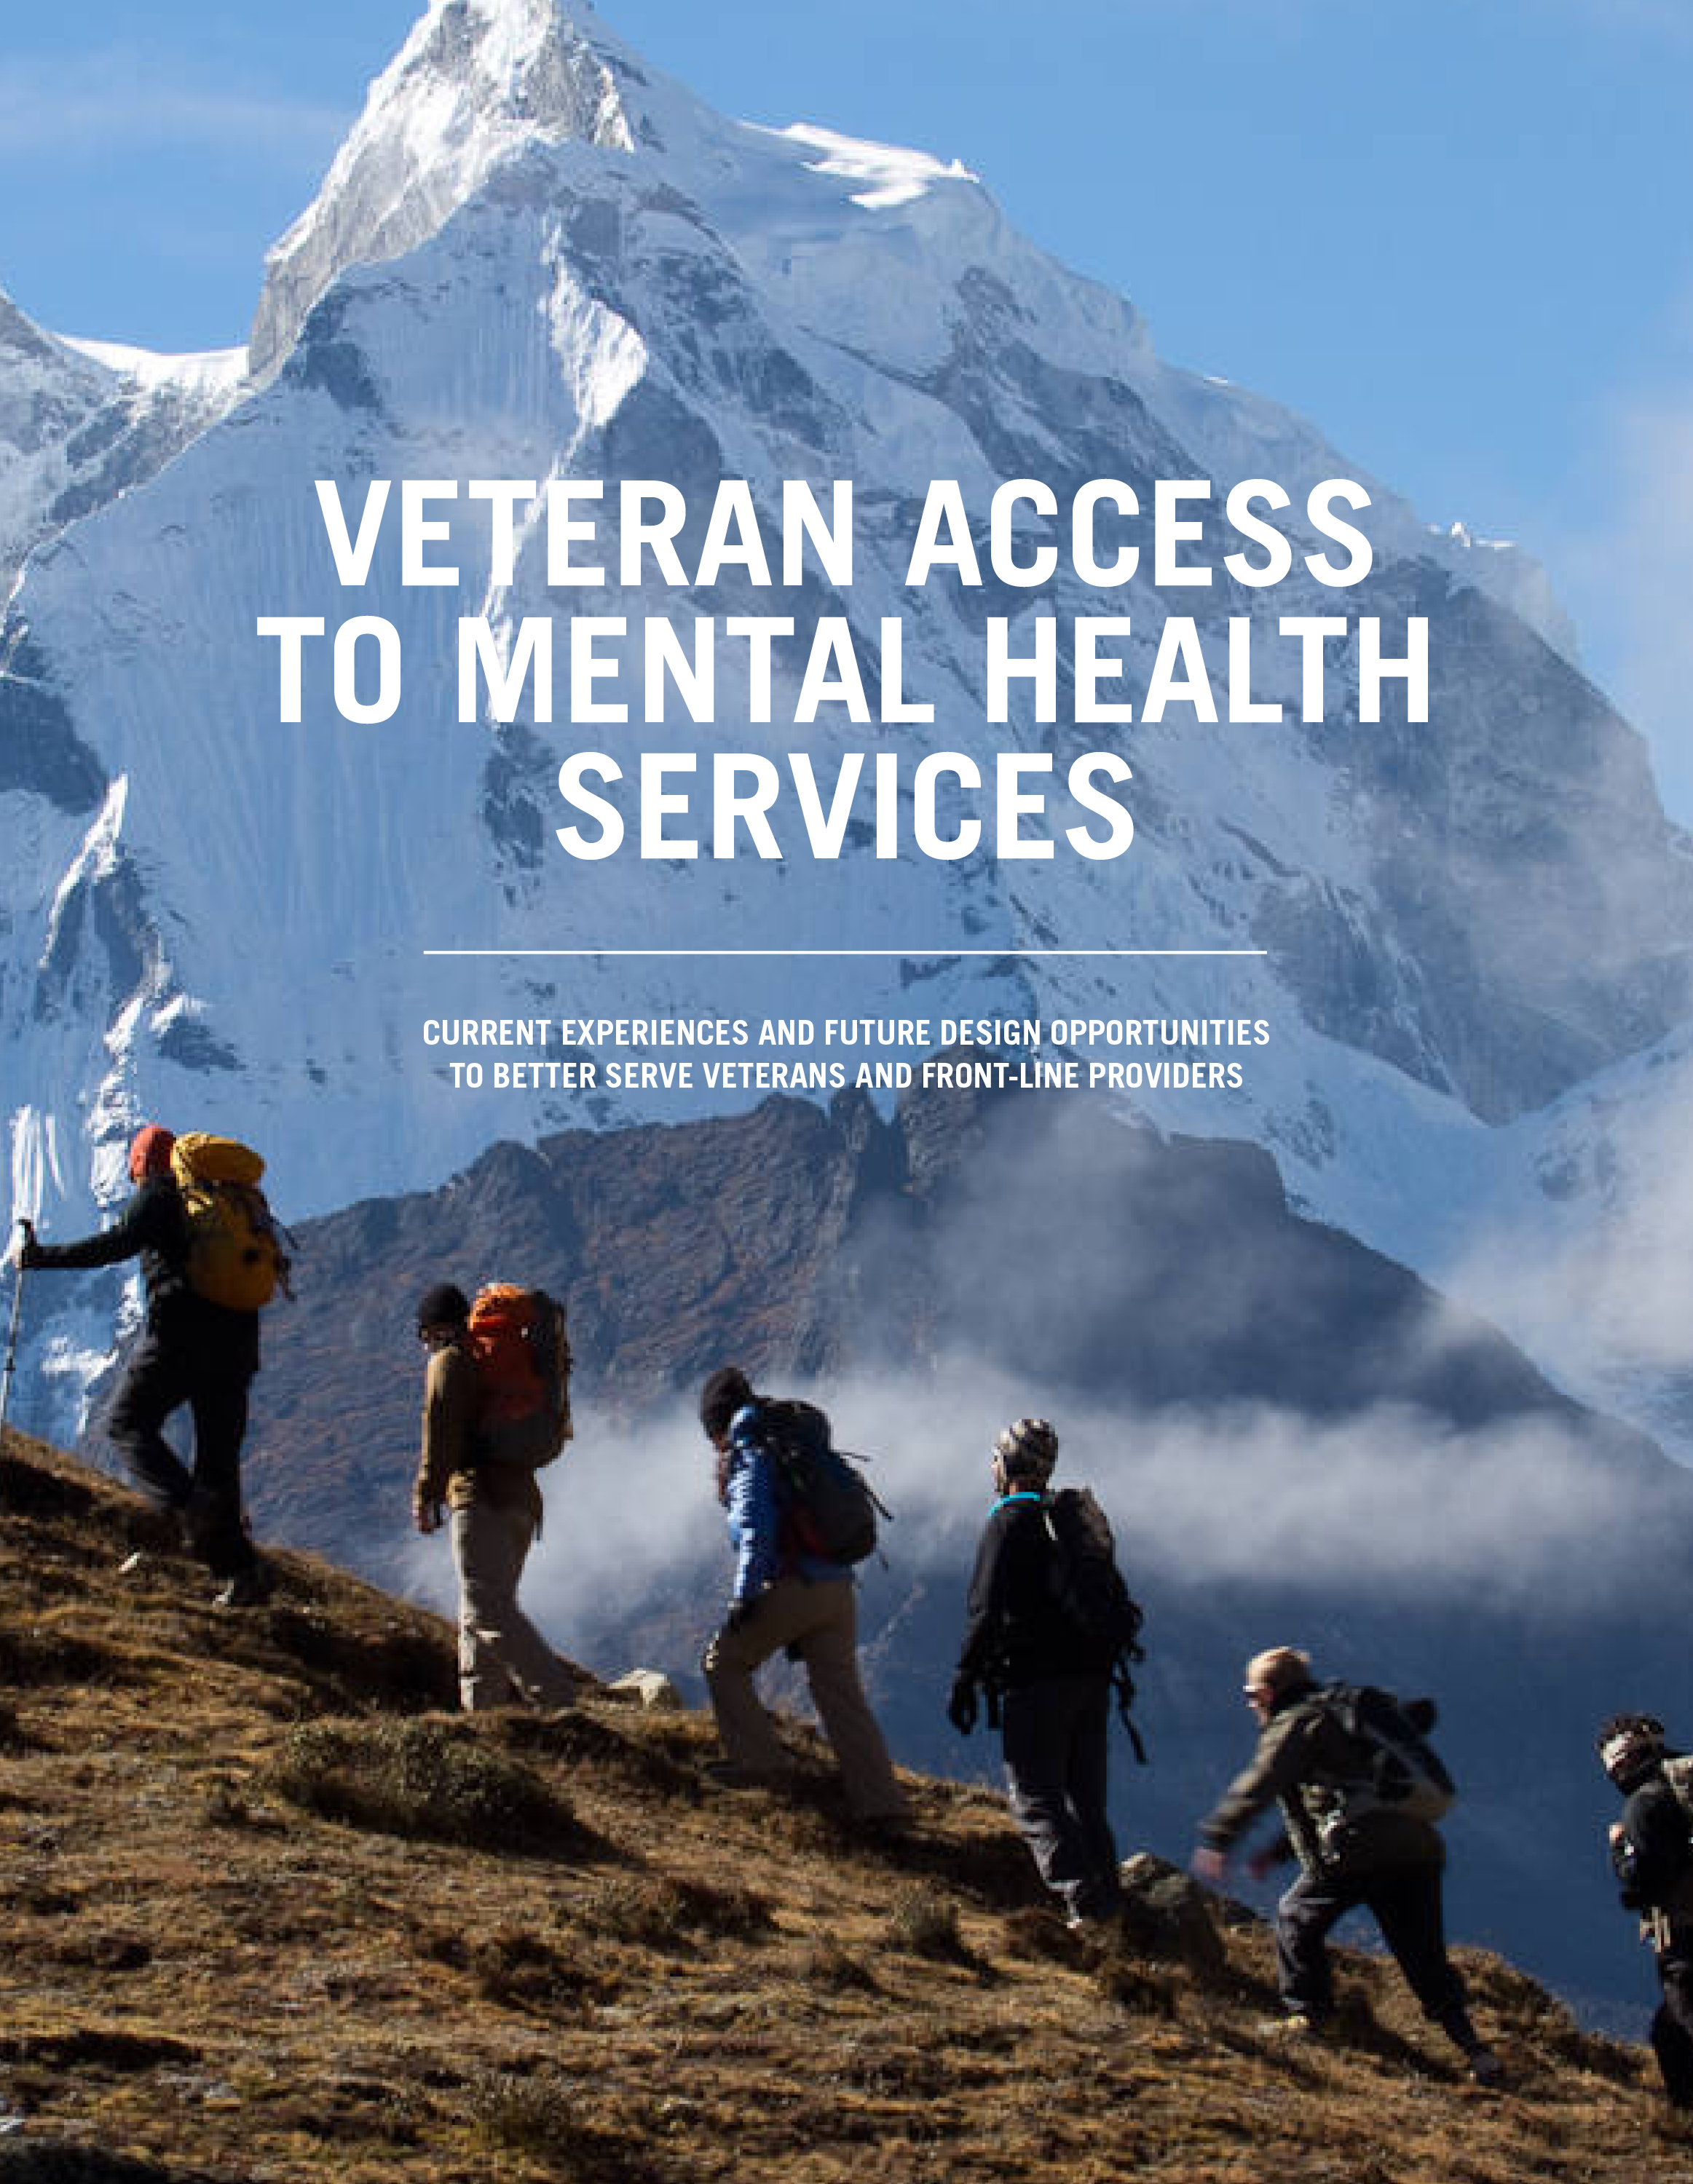 Veteran Access to Mental Health Services